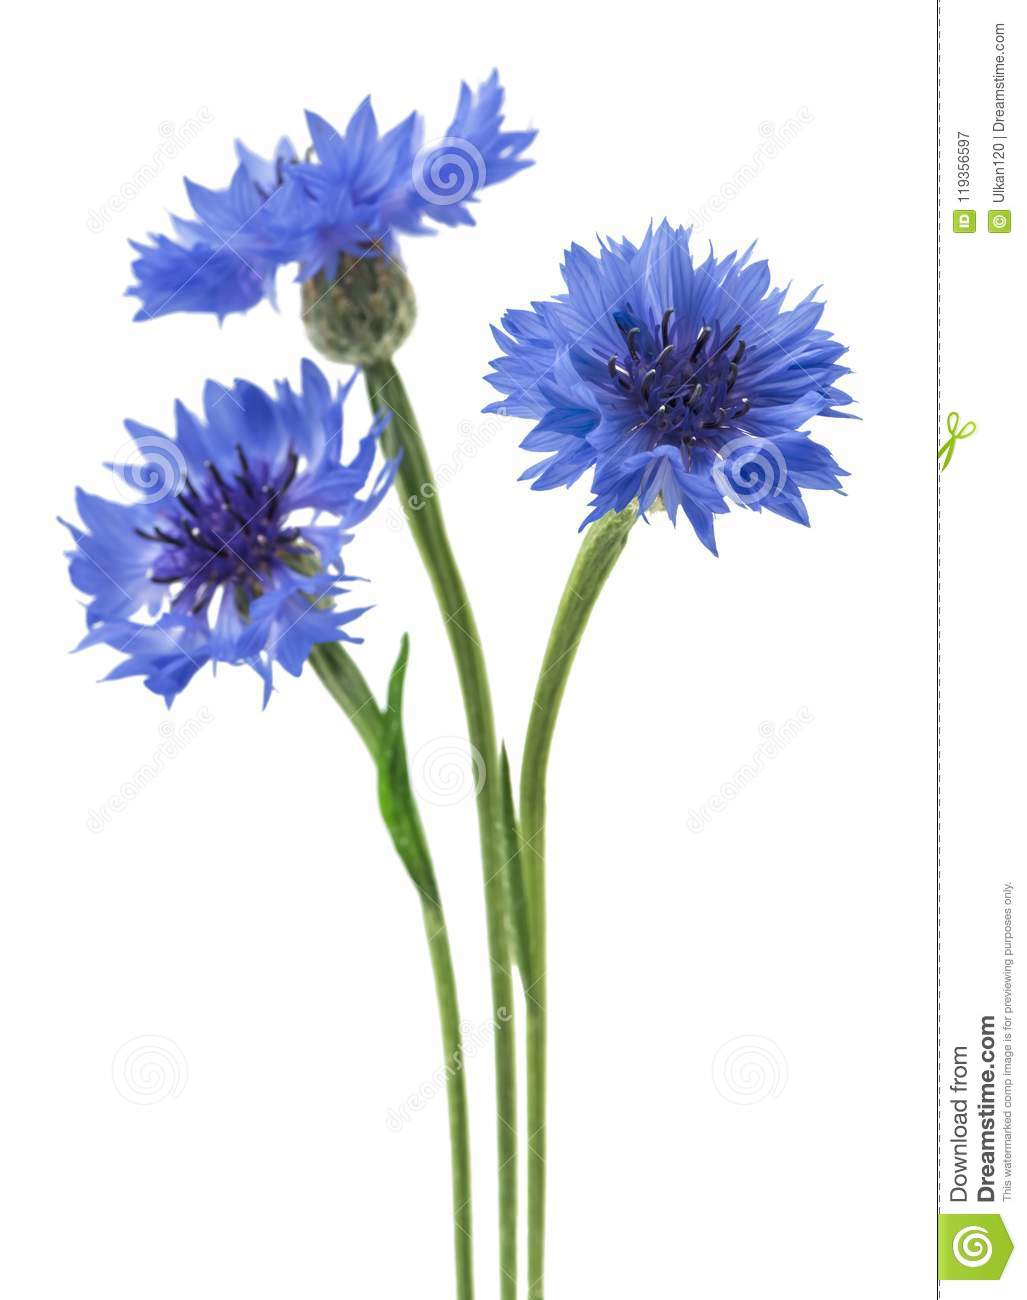 Three Blue Flowers Of A Cornflower Isolated On A White Background